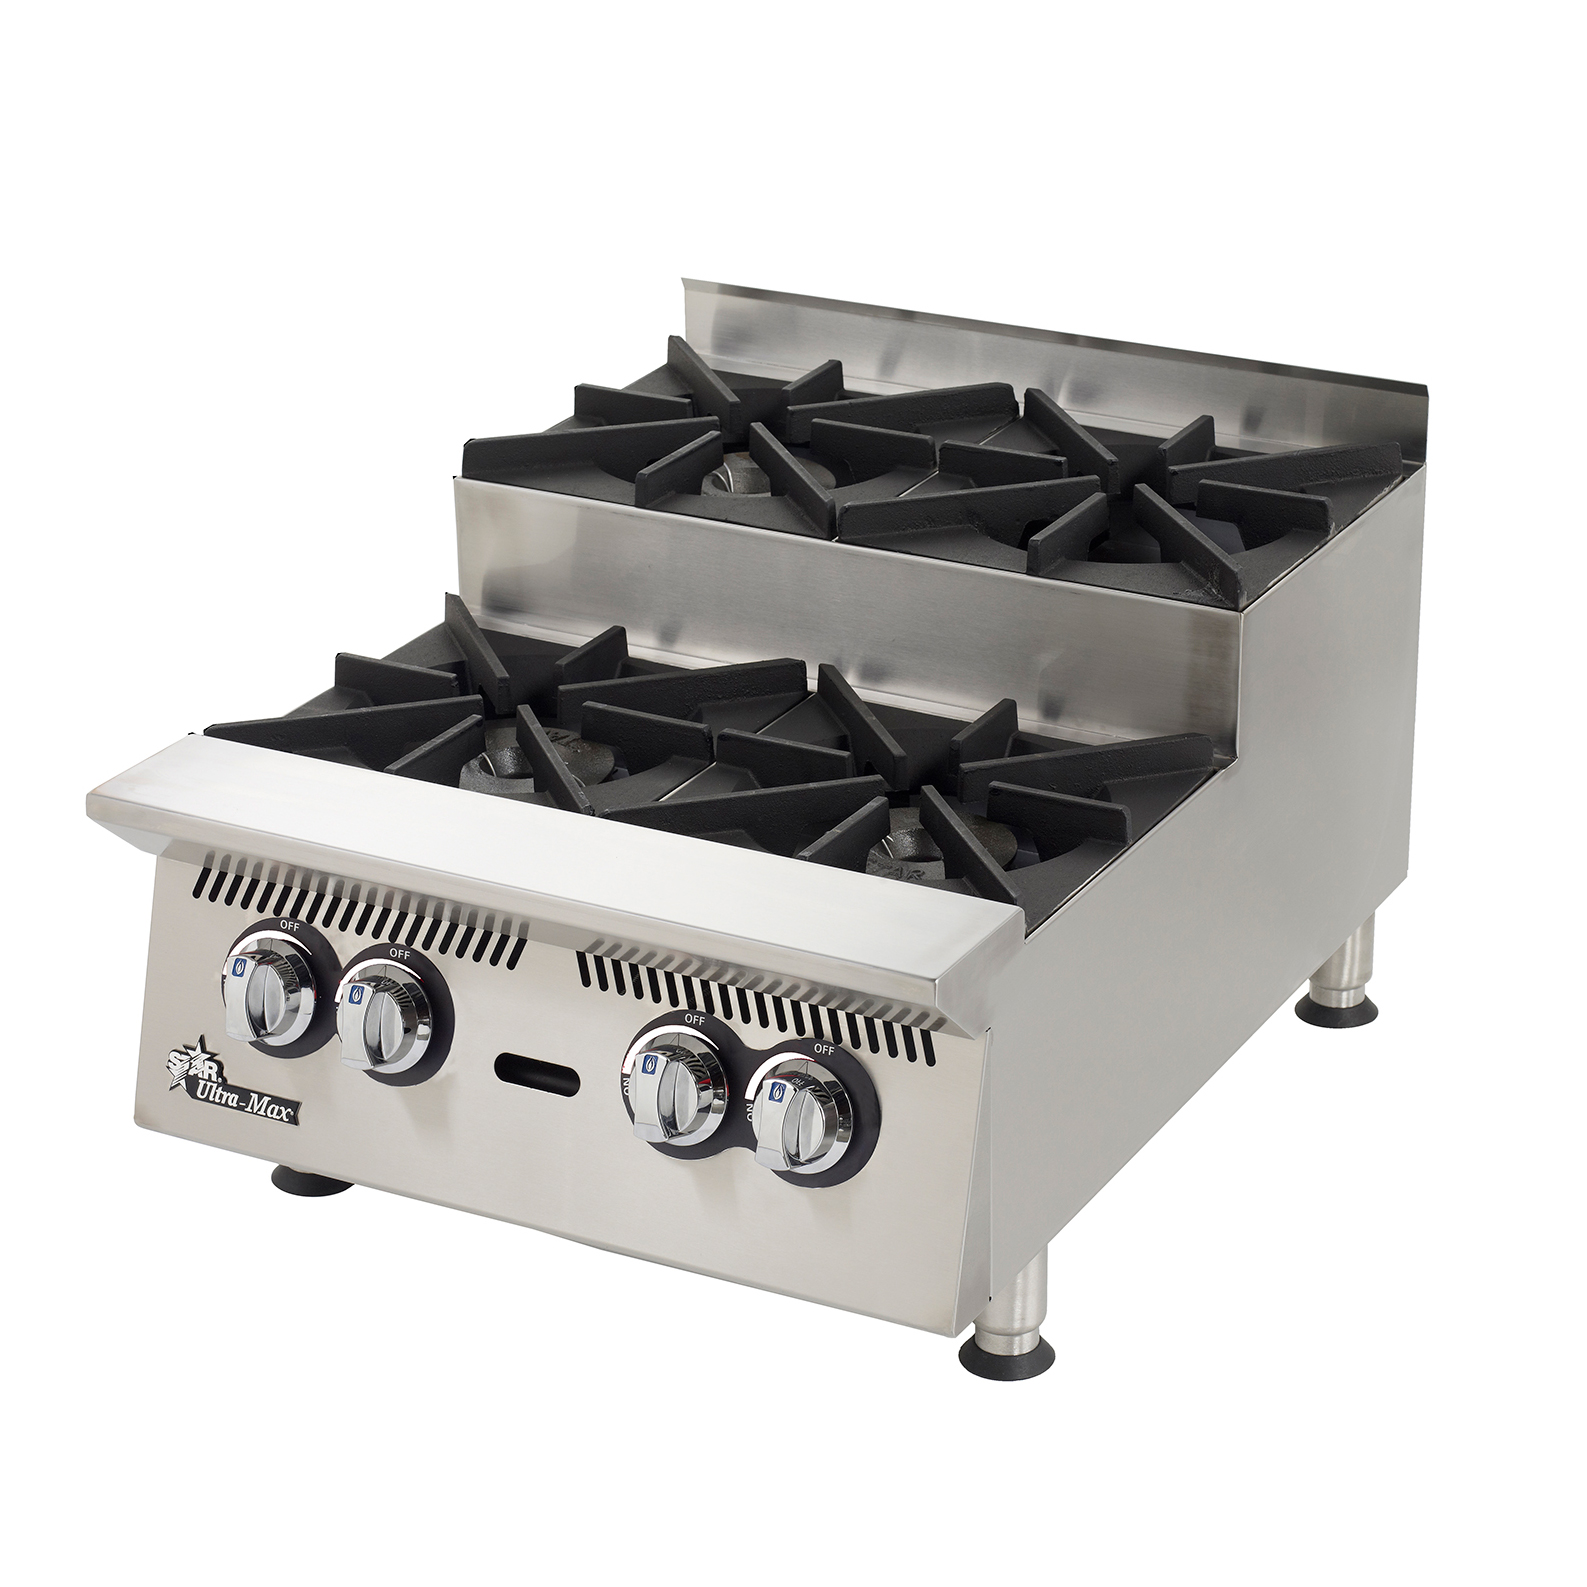 Star 804HA-SU hotplate, countertop, gas